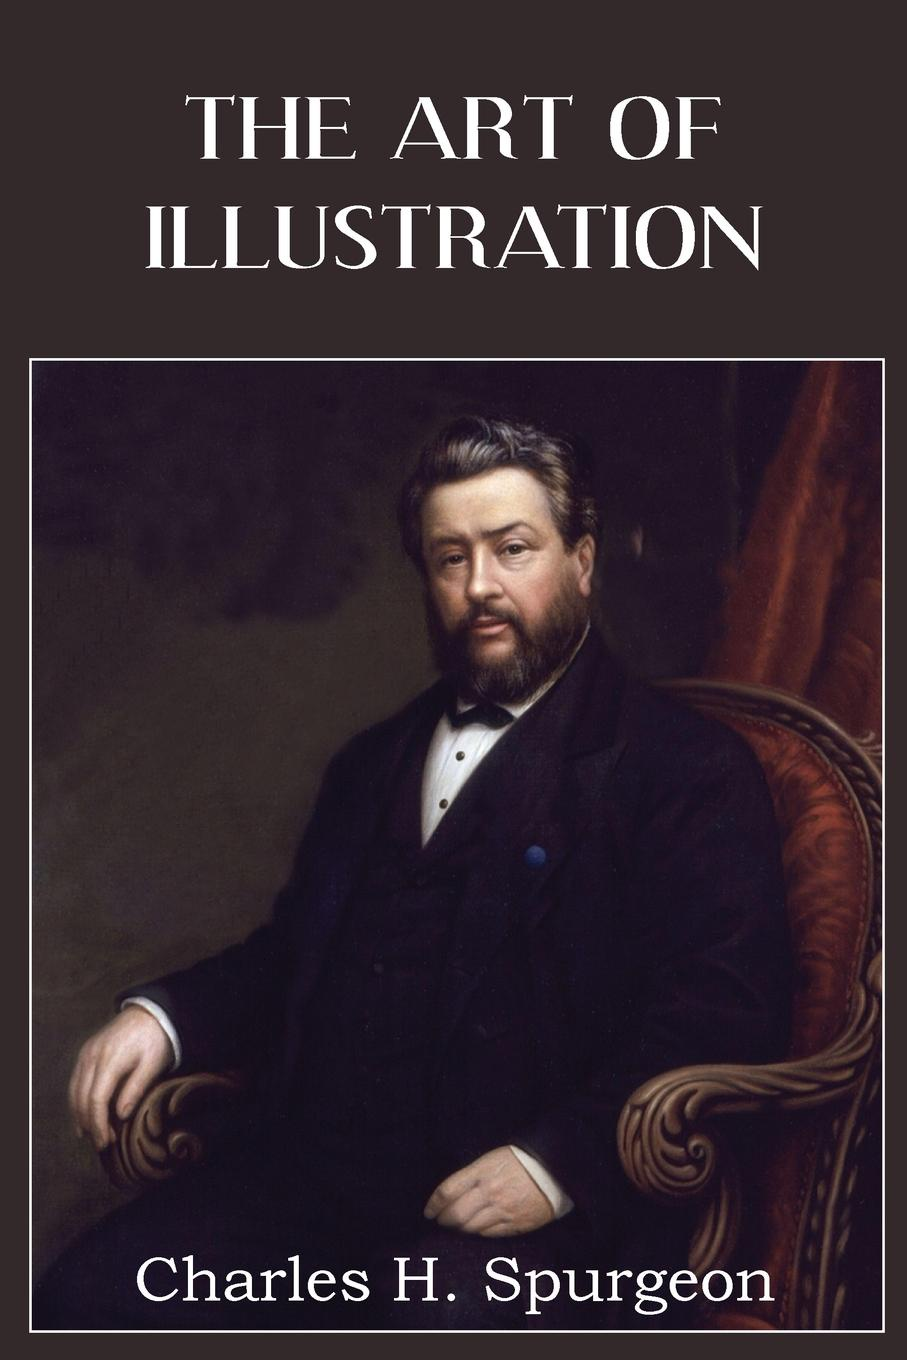 Charles H. Spurgeon The Art of Illustration